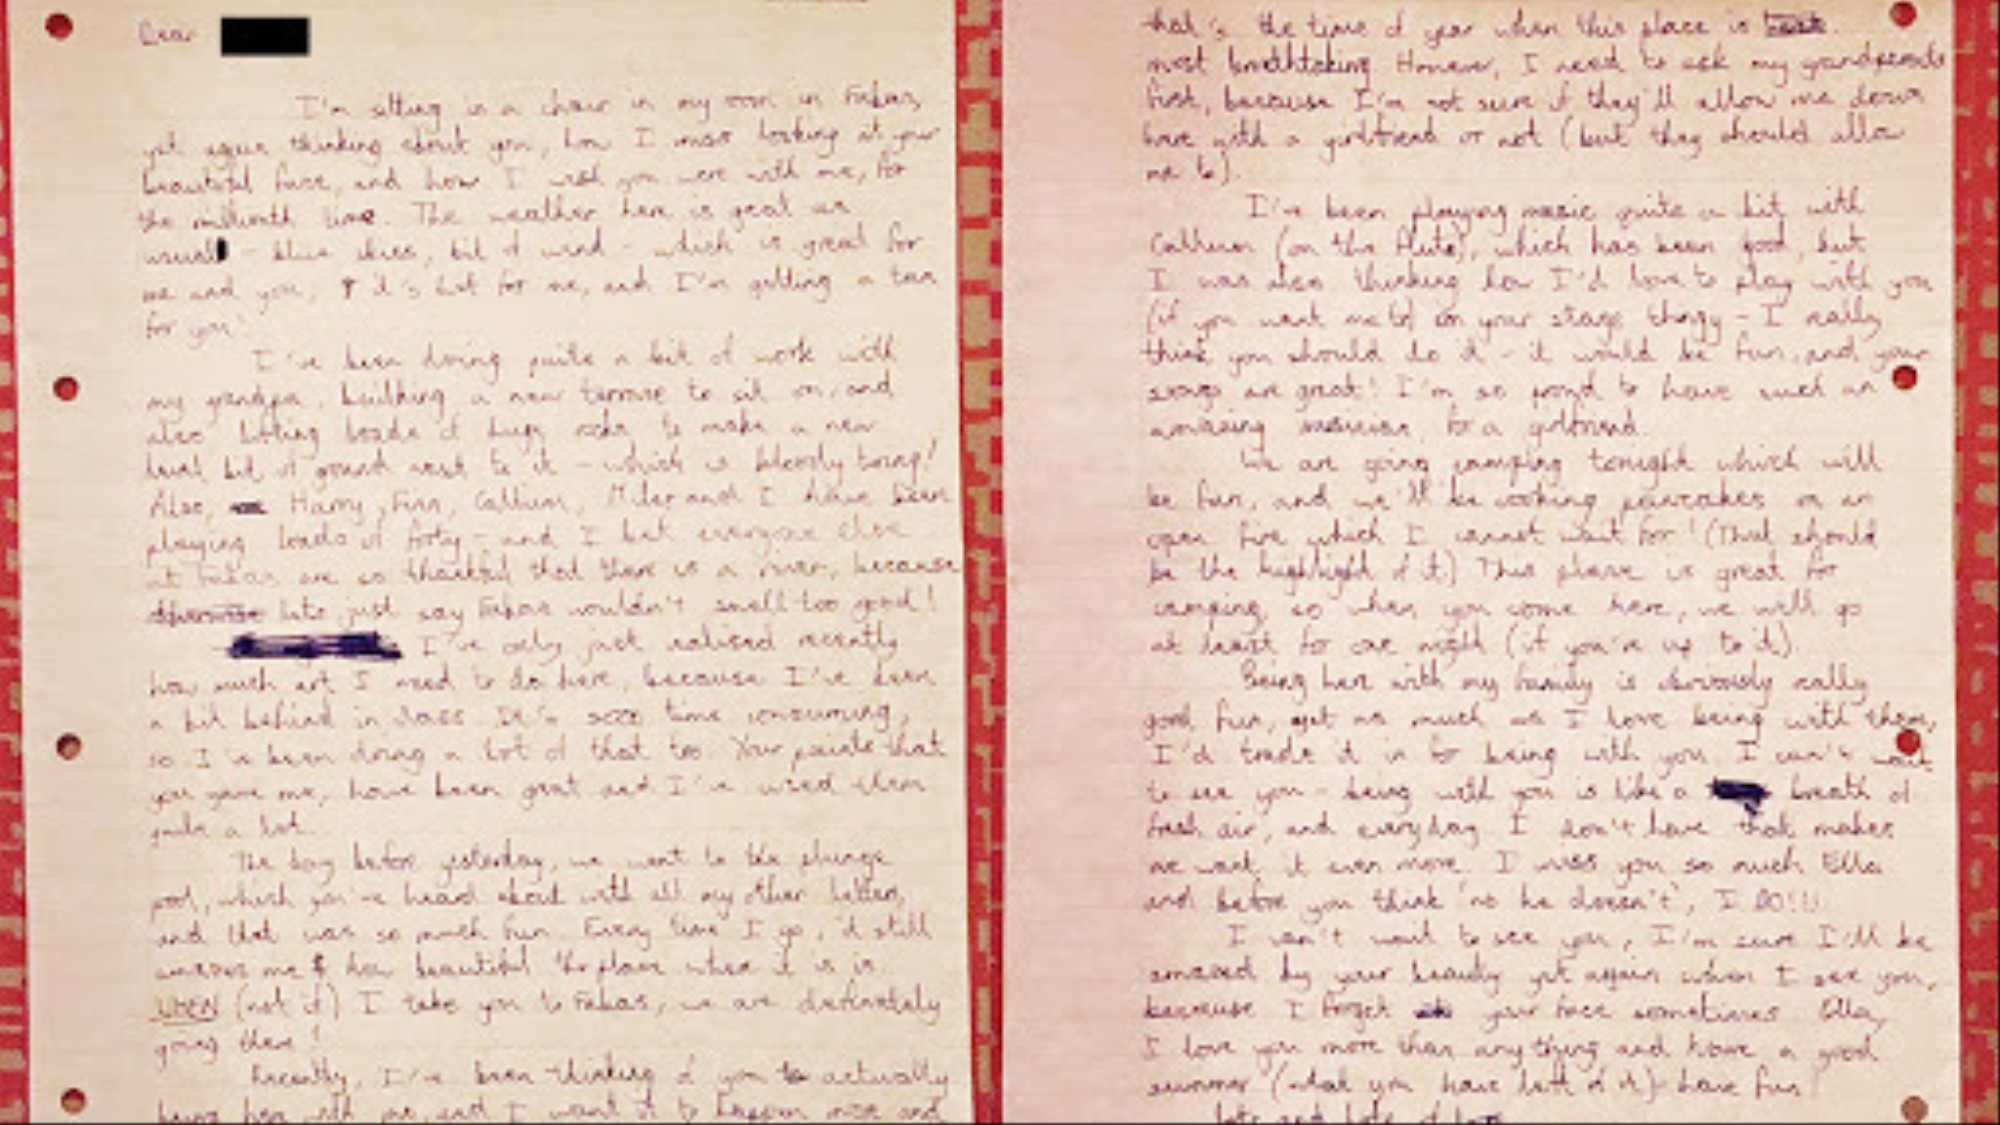 Love Letter To Your Wife.People Show Us Their Old Love Letters Vice